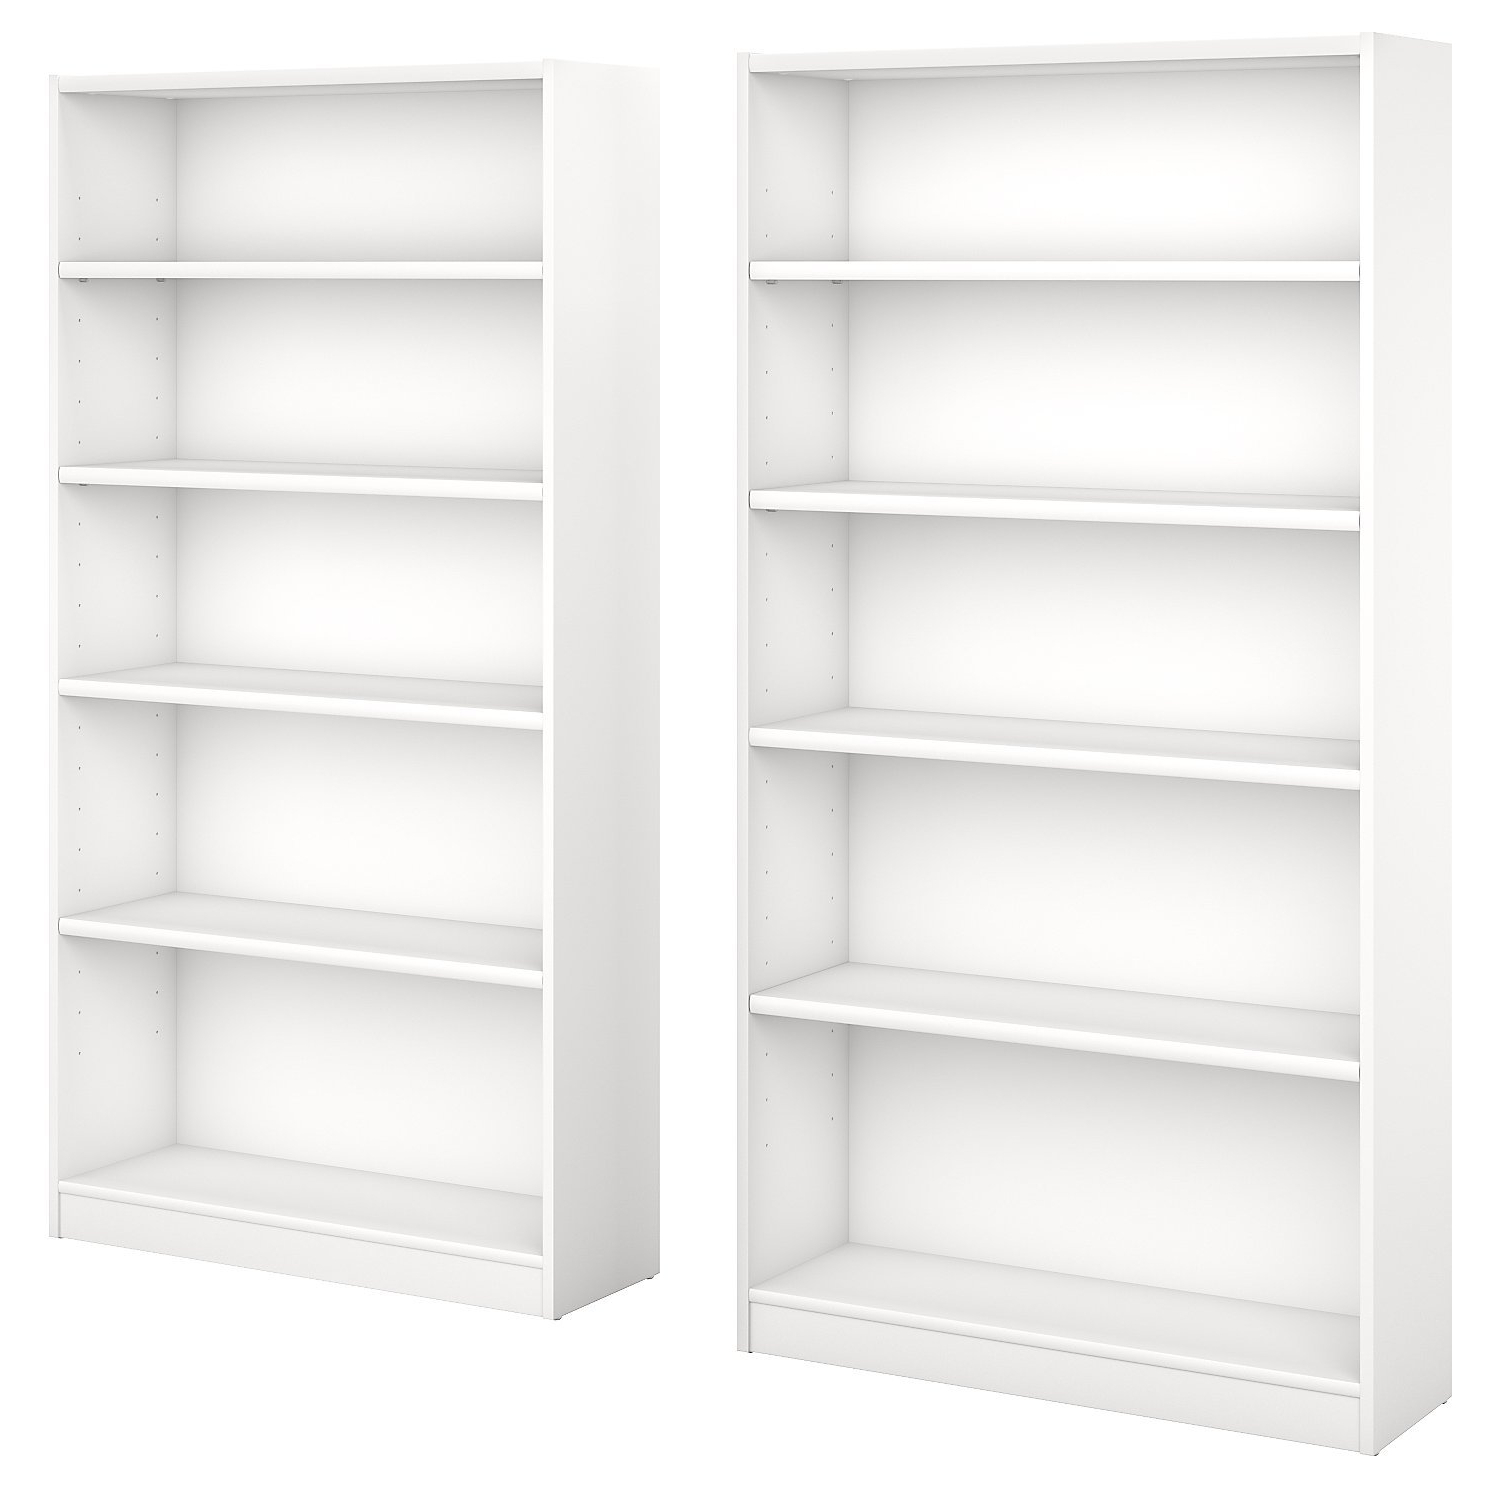 Morrell Standard Bookcase Intended For Well Known Morrell Standard Bookcases (View 5 of 20)